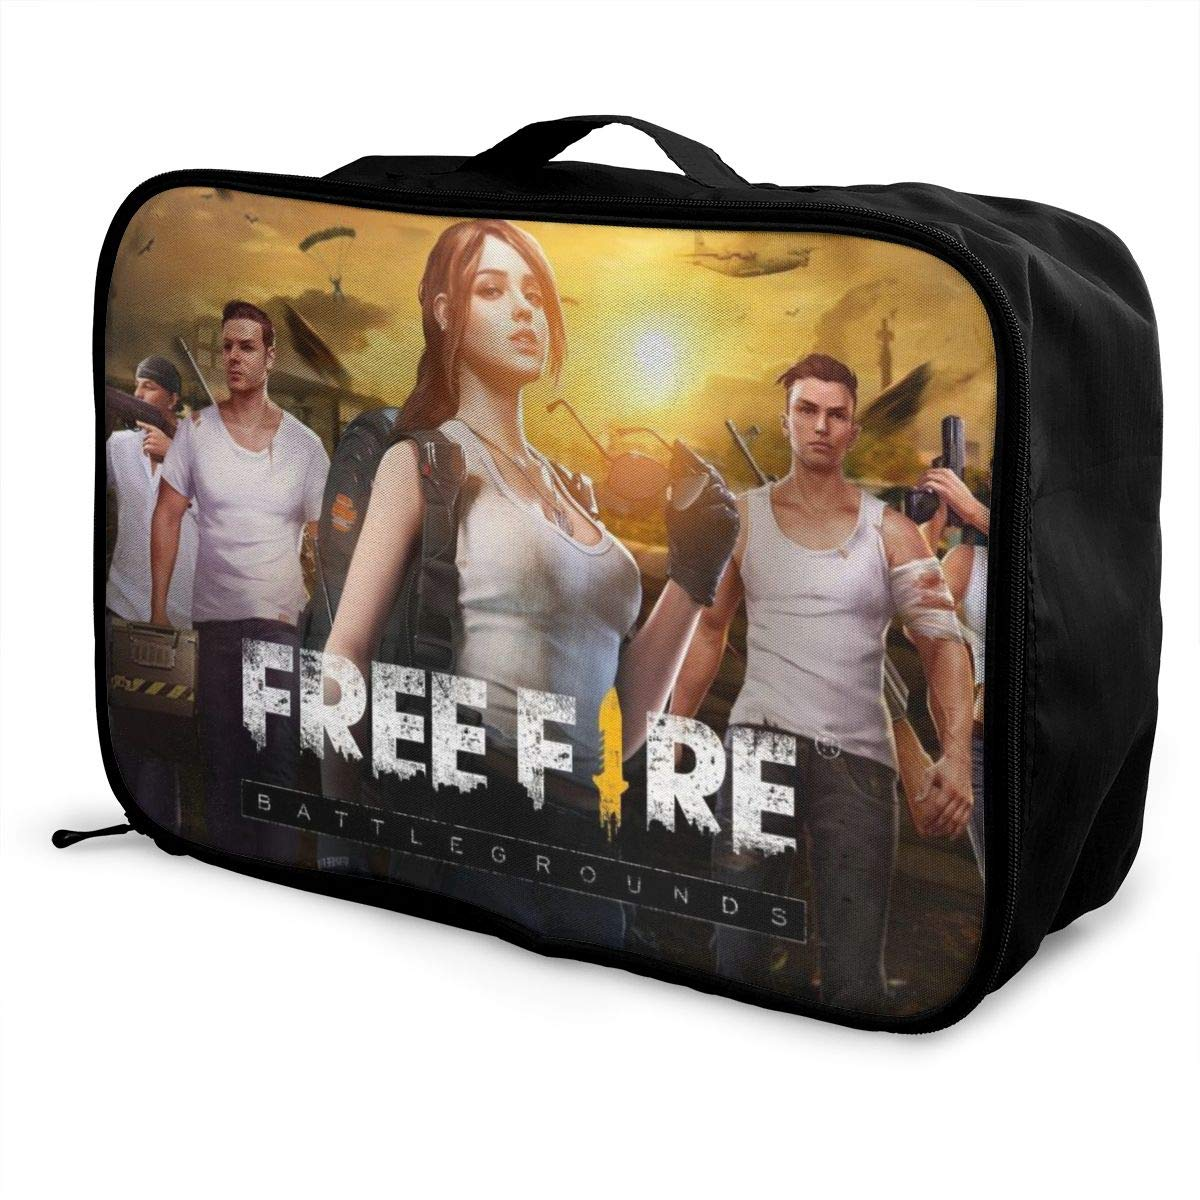 F-ree F-ire Personalize Design Waterproof Portable Trolley Handle Luggage Bag Travel Bag